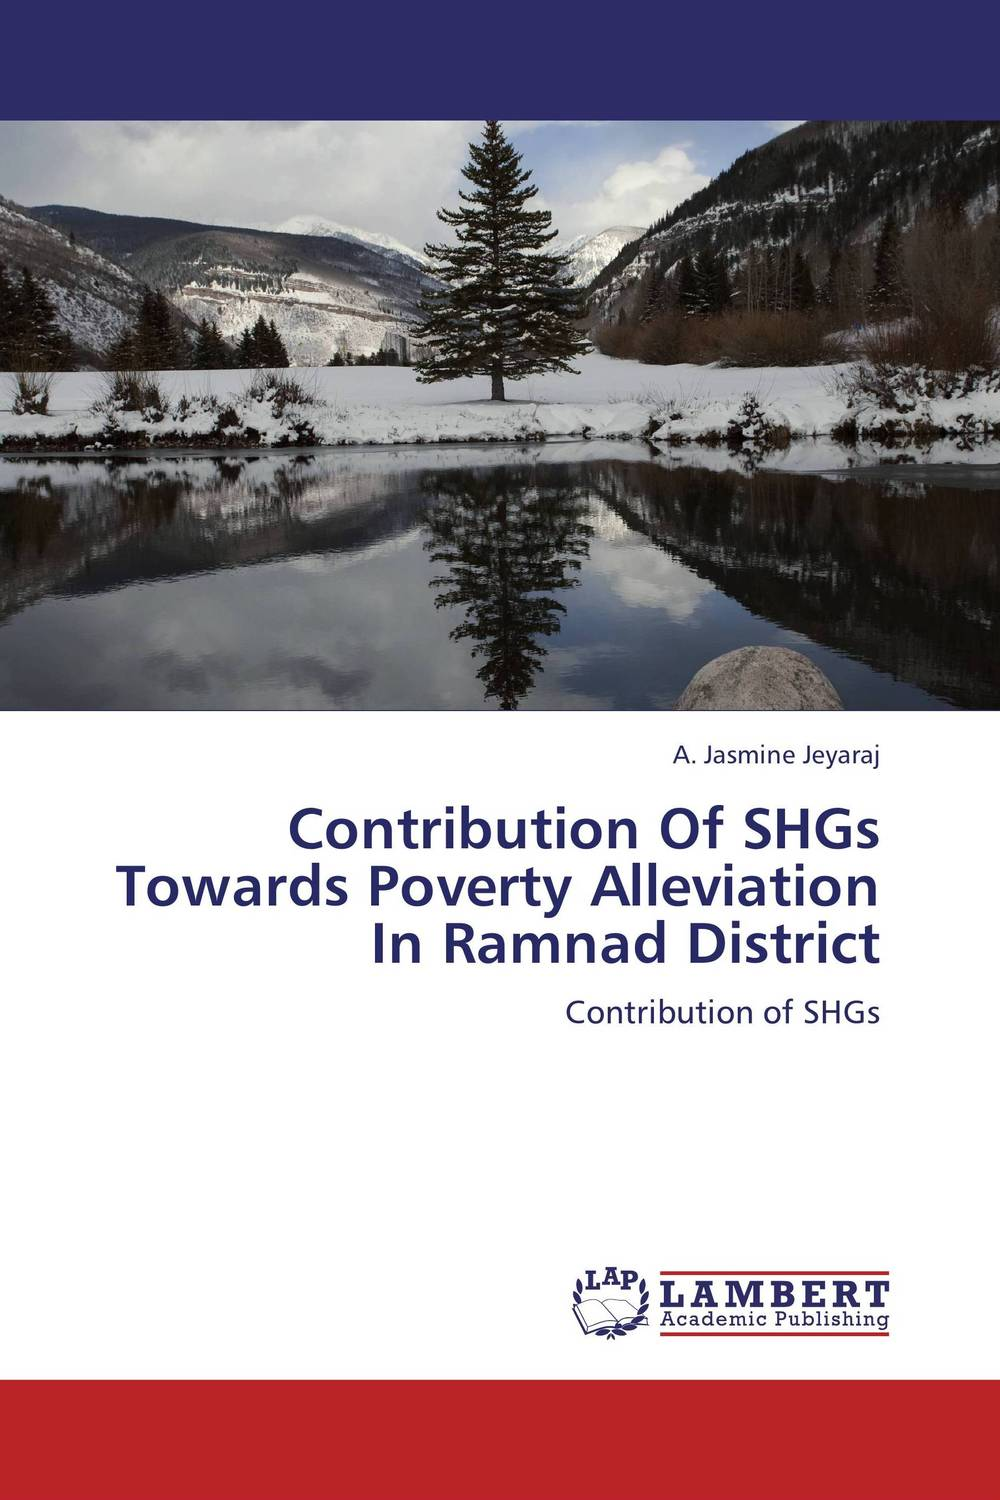 Contribution Of SHGs Towards Poverty Alleviation In Ramnad District local government budgeting and poverty alleviation in rwanda